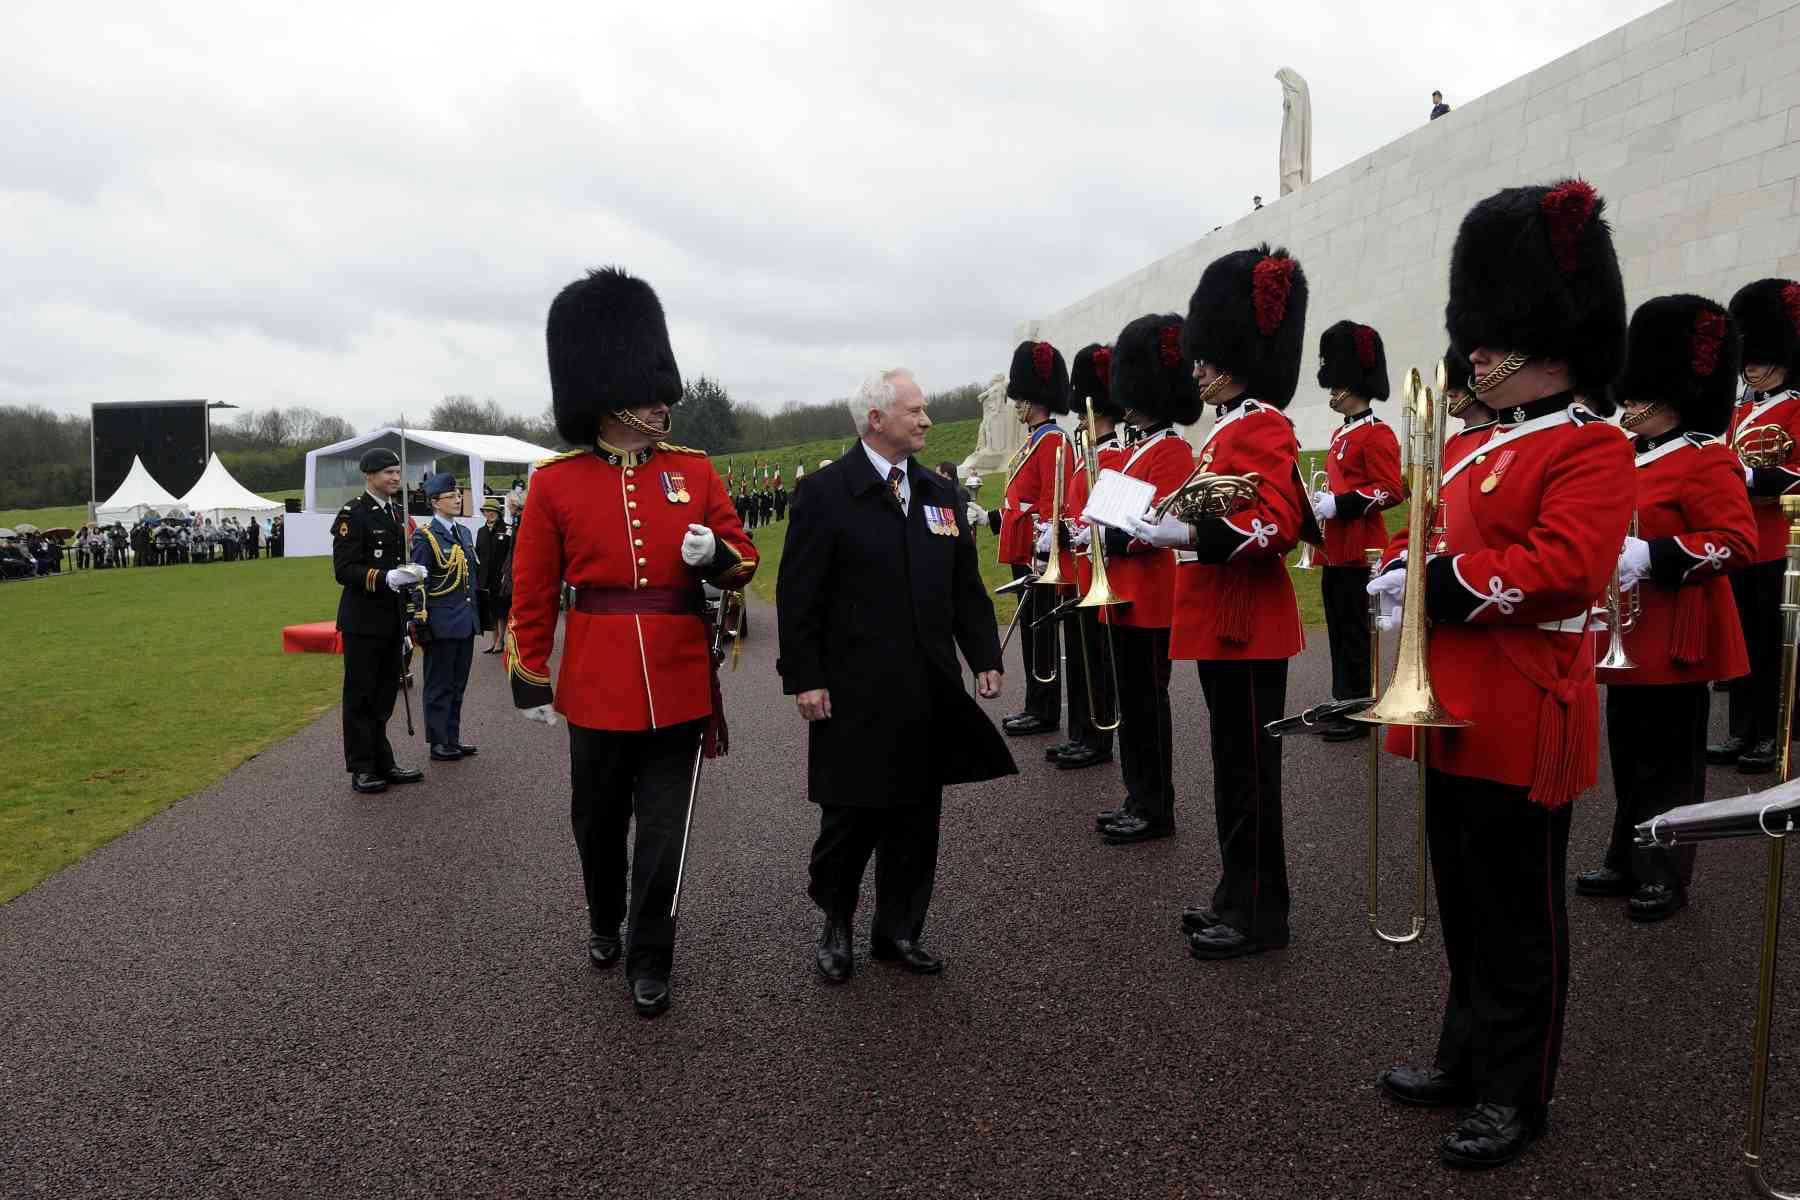 The Governor General and Commander-in-Chief proceeded with an inspection of the guard.